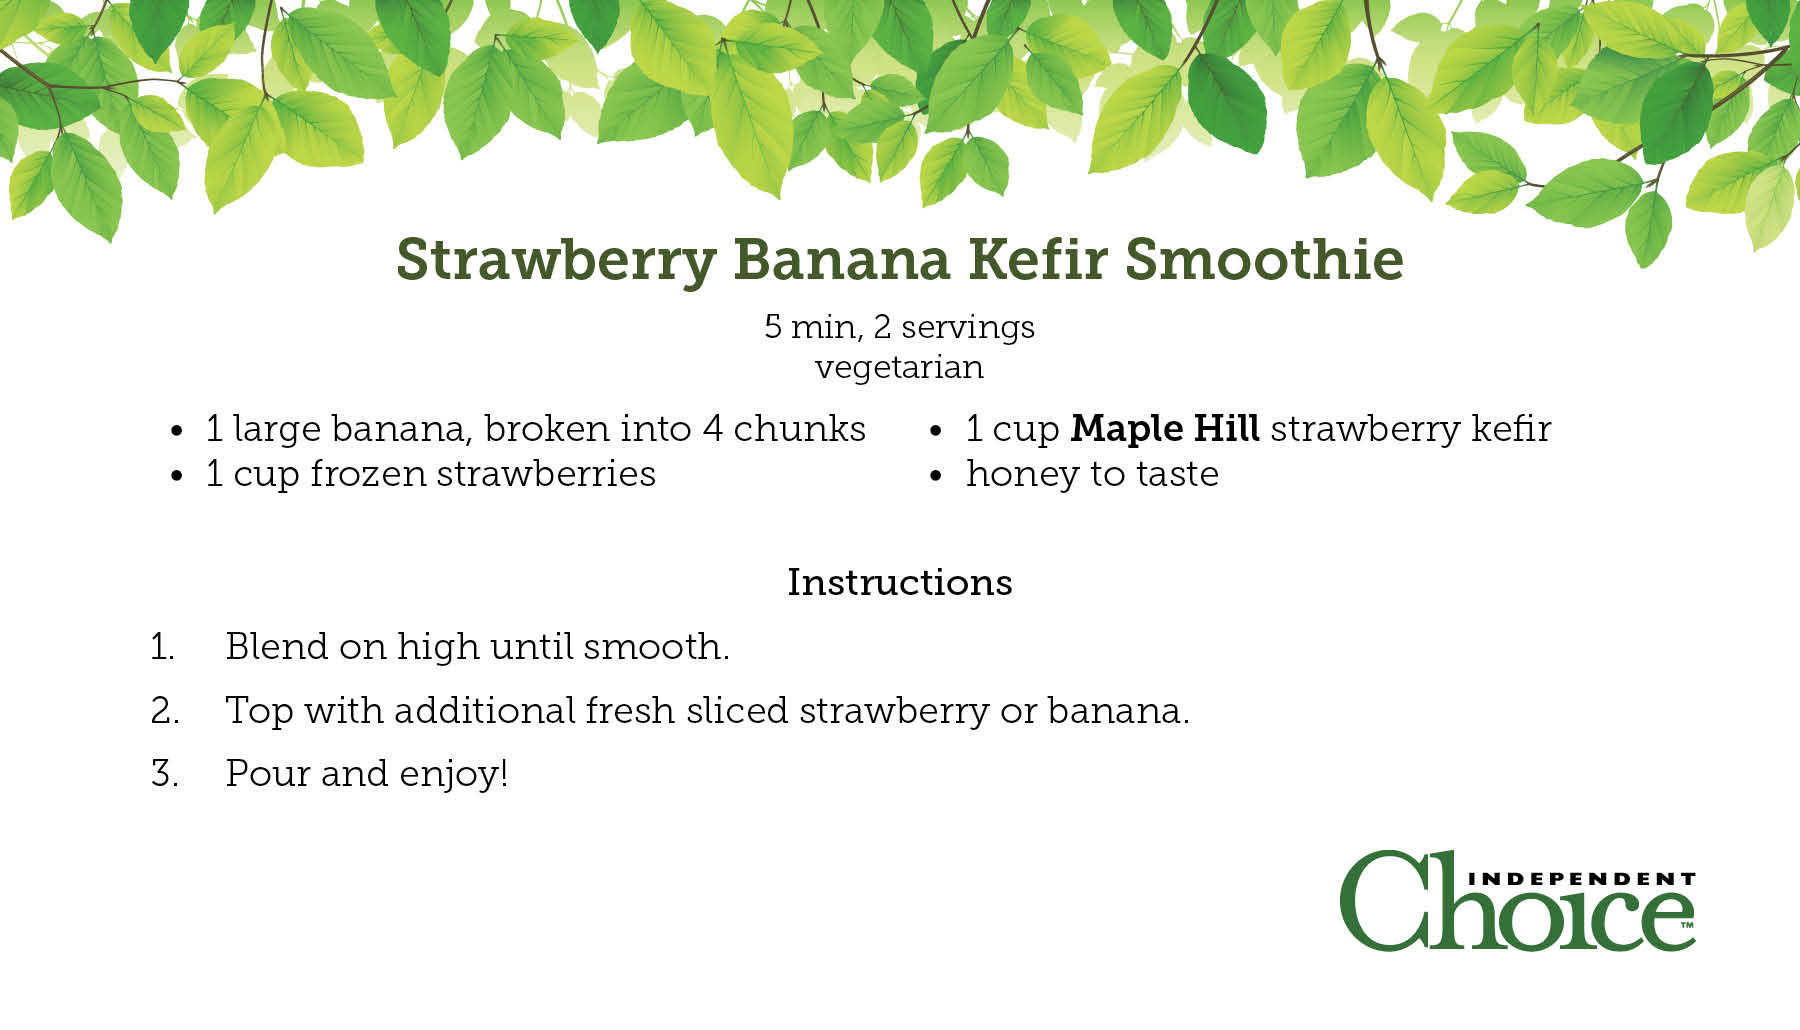 Strawberry Banana Kefir Smoothie.jpg